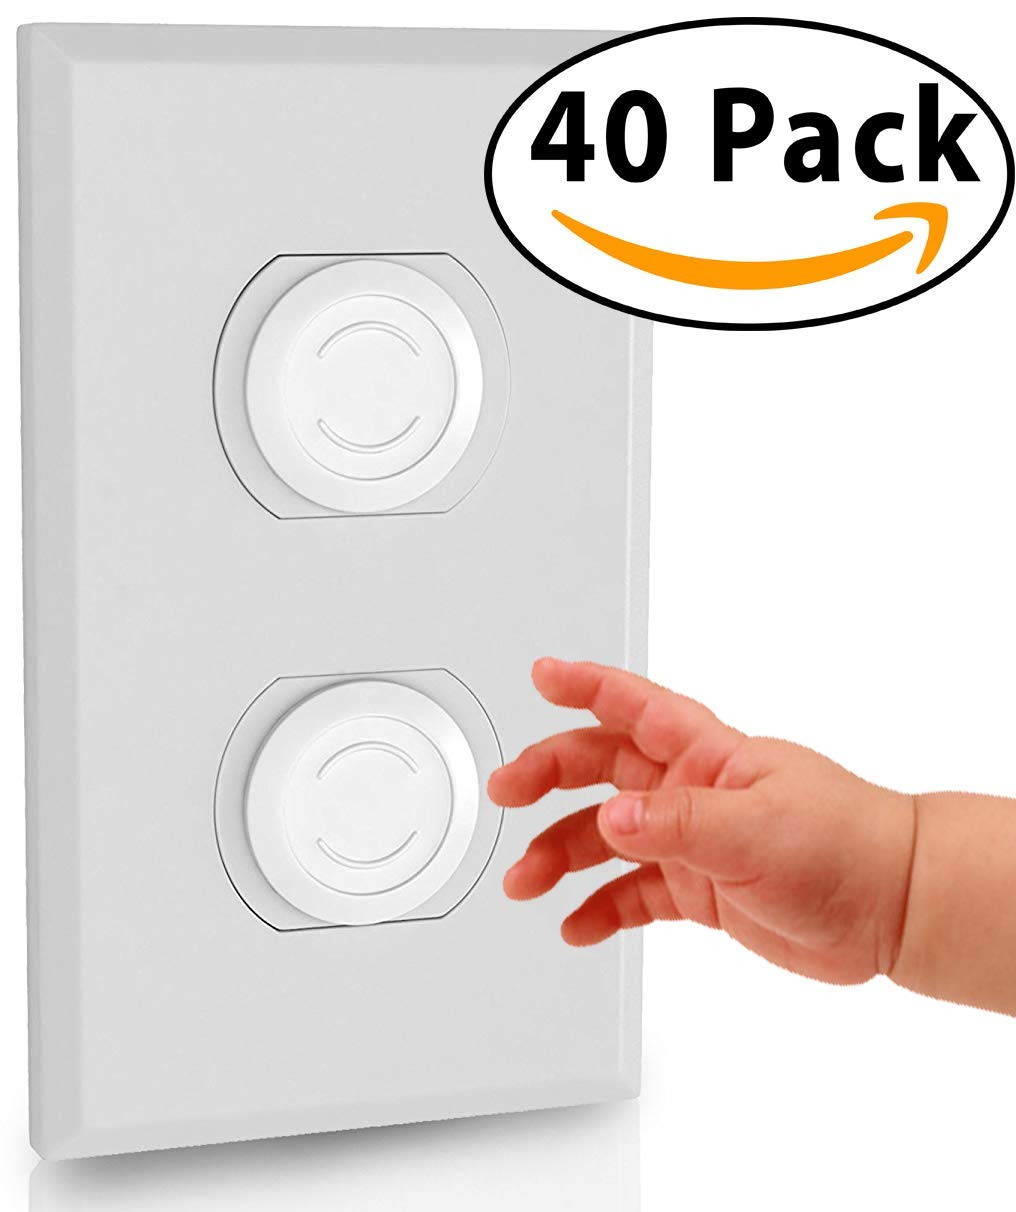 40 Pack Outlet Plugs Covers [Protect Your Child] Child Proof - Best Safety Electrical Power Socket Plug Wall Cover Protector - Plastic Baby Proofing Caps [Perfect FIT] White (40 Pack) LeftPro